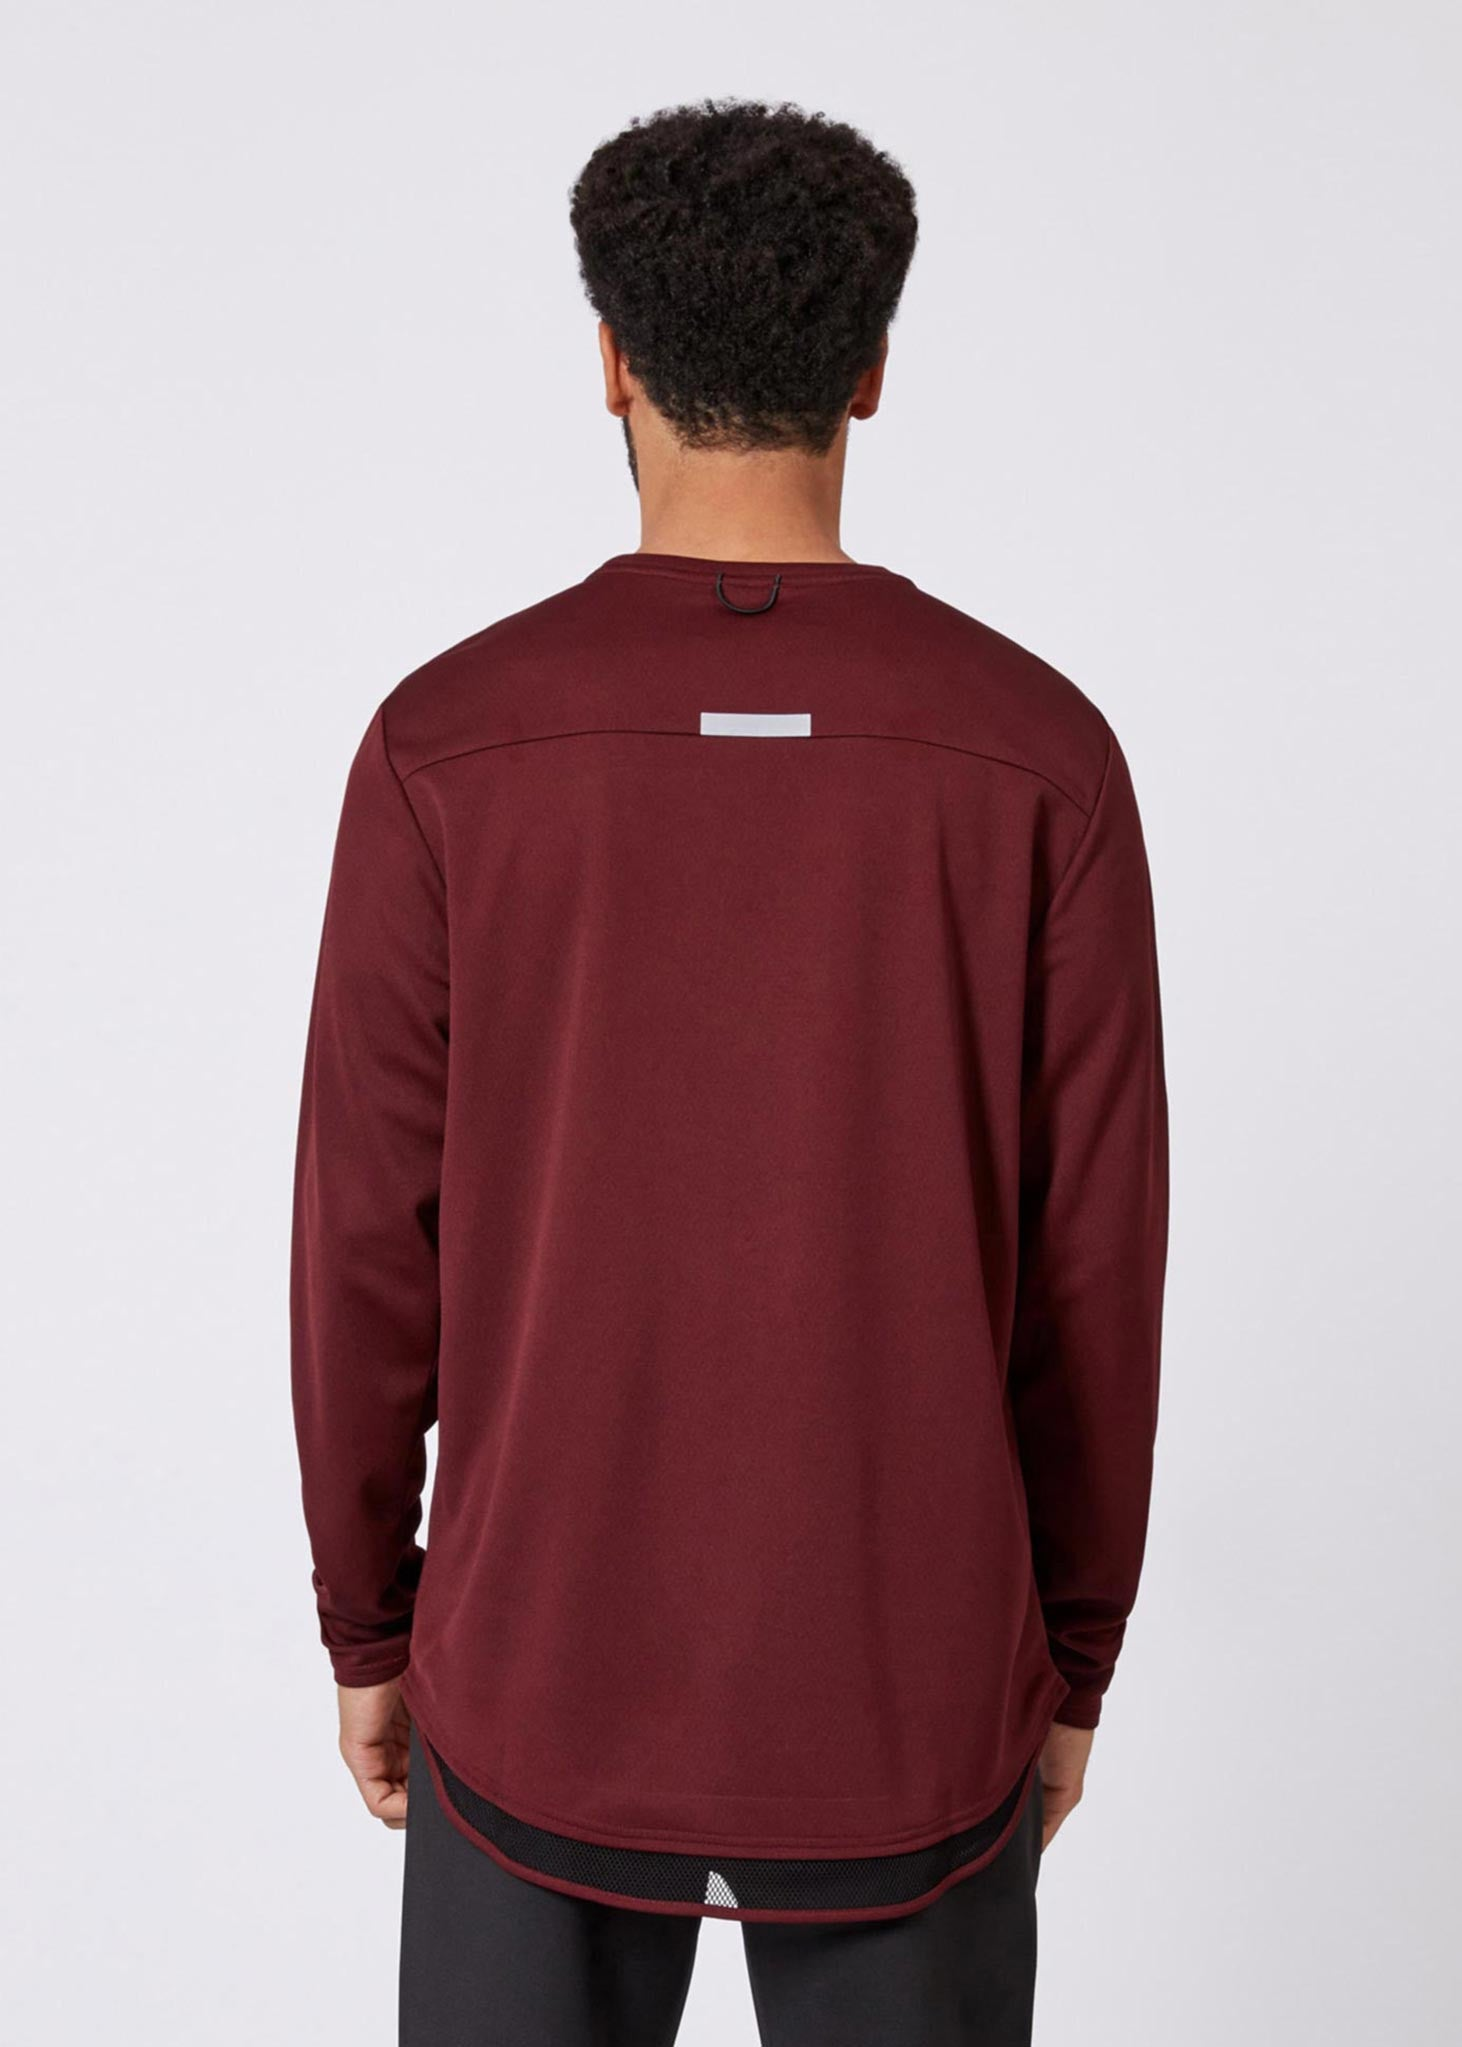 Akaya Long Sleeve